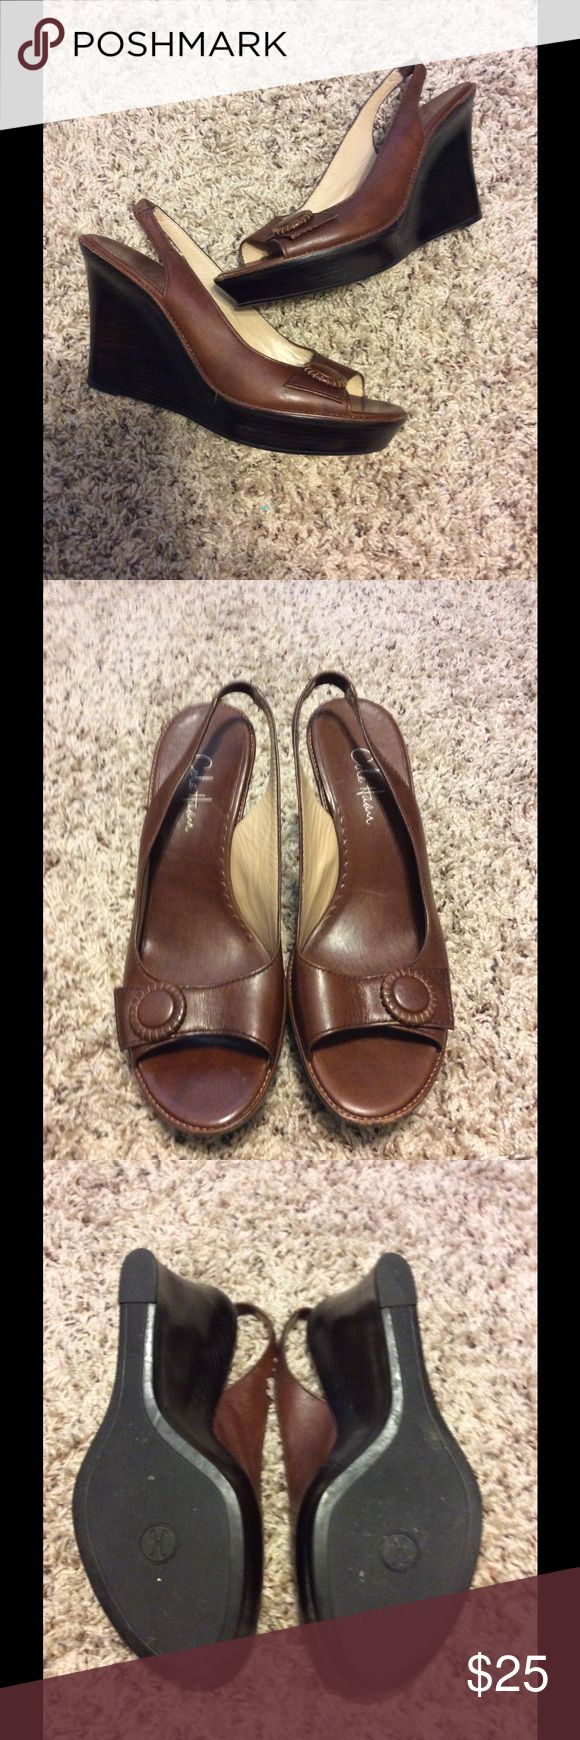 Brown Cole Hann wedges Brown Cole Hann wedges---like new condition Cole Haan Shoes Wedges